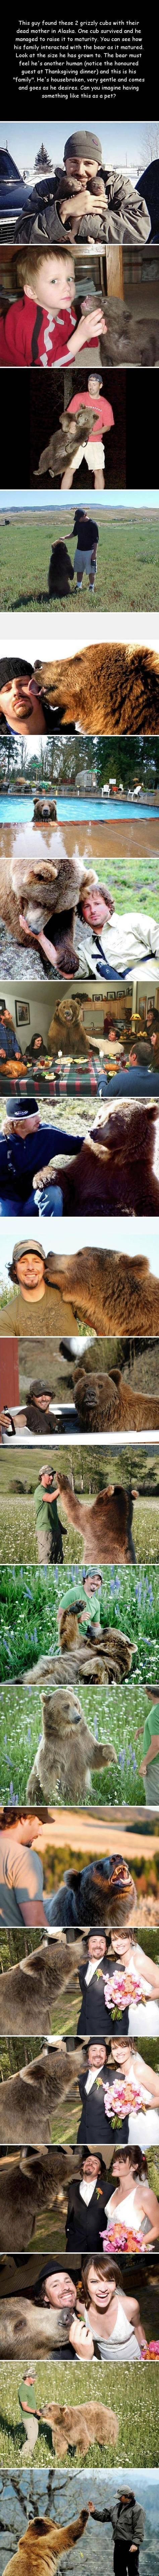 Amazing: Humanity Restored, Sweet, Adorable Animals, Guy, Wild Animals, Pet Bear, Grizzly Bears